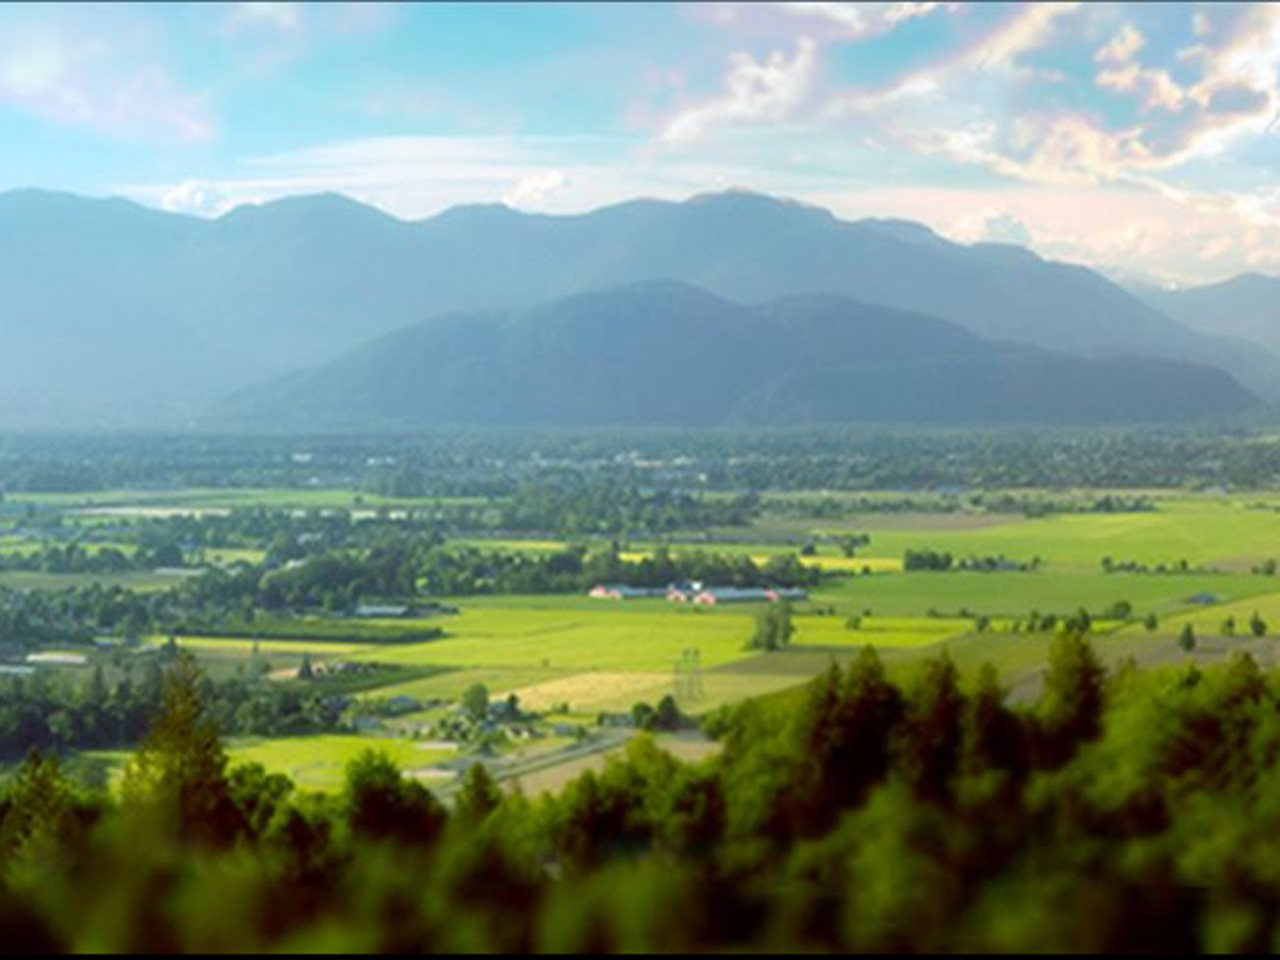 Awesome building lot at The Summit on Promontory in Beautiful Chilliwack. This 4600sqft lot sits on a dean end street and backs onto Green Space with endless walking trails through your back door! Located just mins away from Shopping, Schools, Parks, Activity Centers and more makes this location prime. Come check out this beautiful neighborhood and build the home of your dreams!